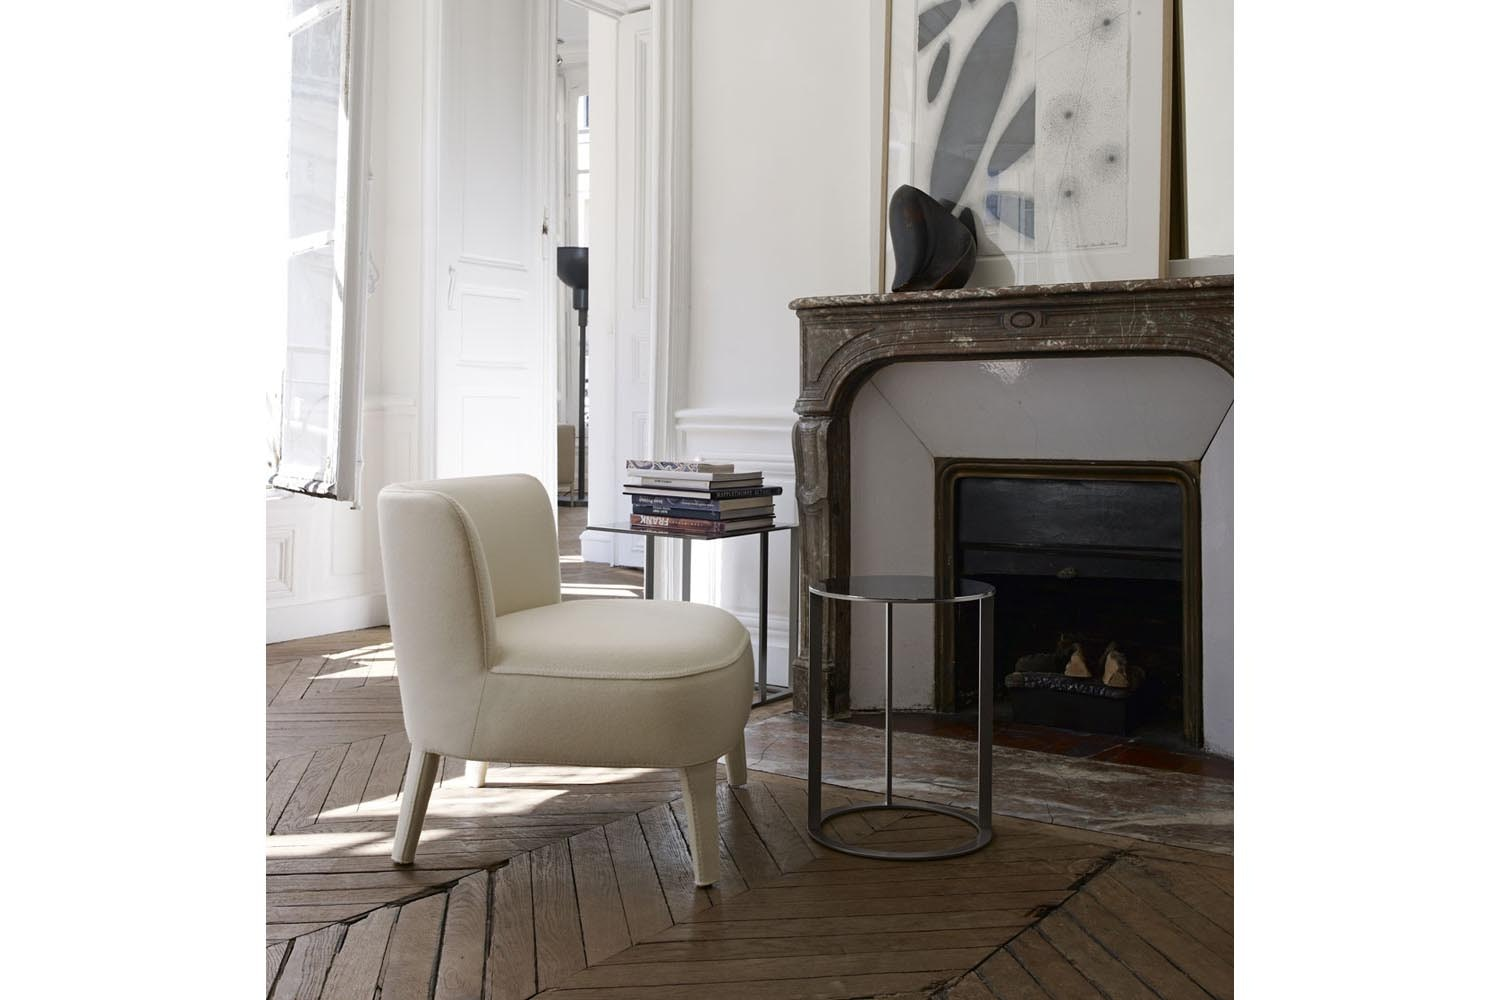 Febo Armchair With Low Back By Antonio Citterio For Maxalto